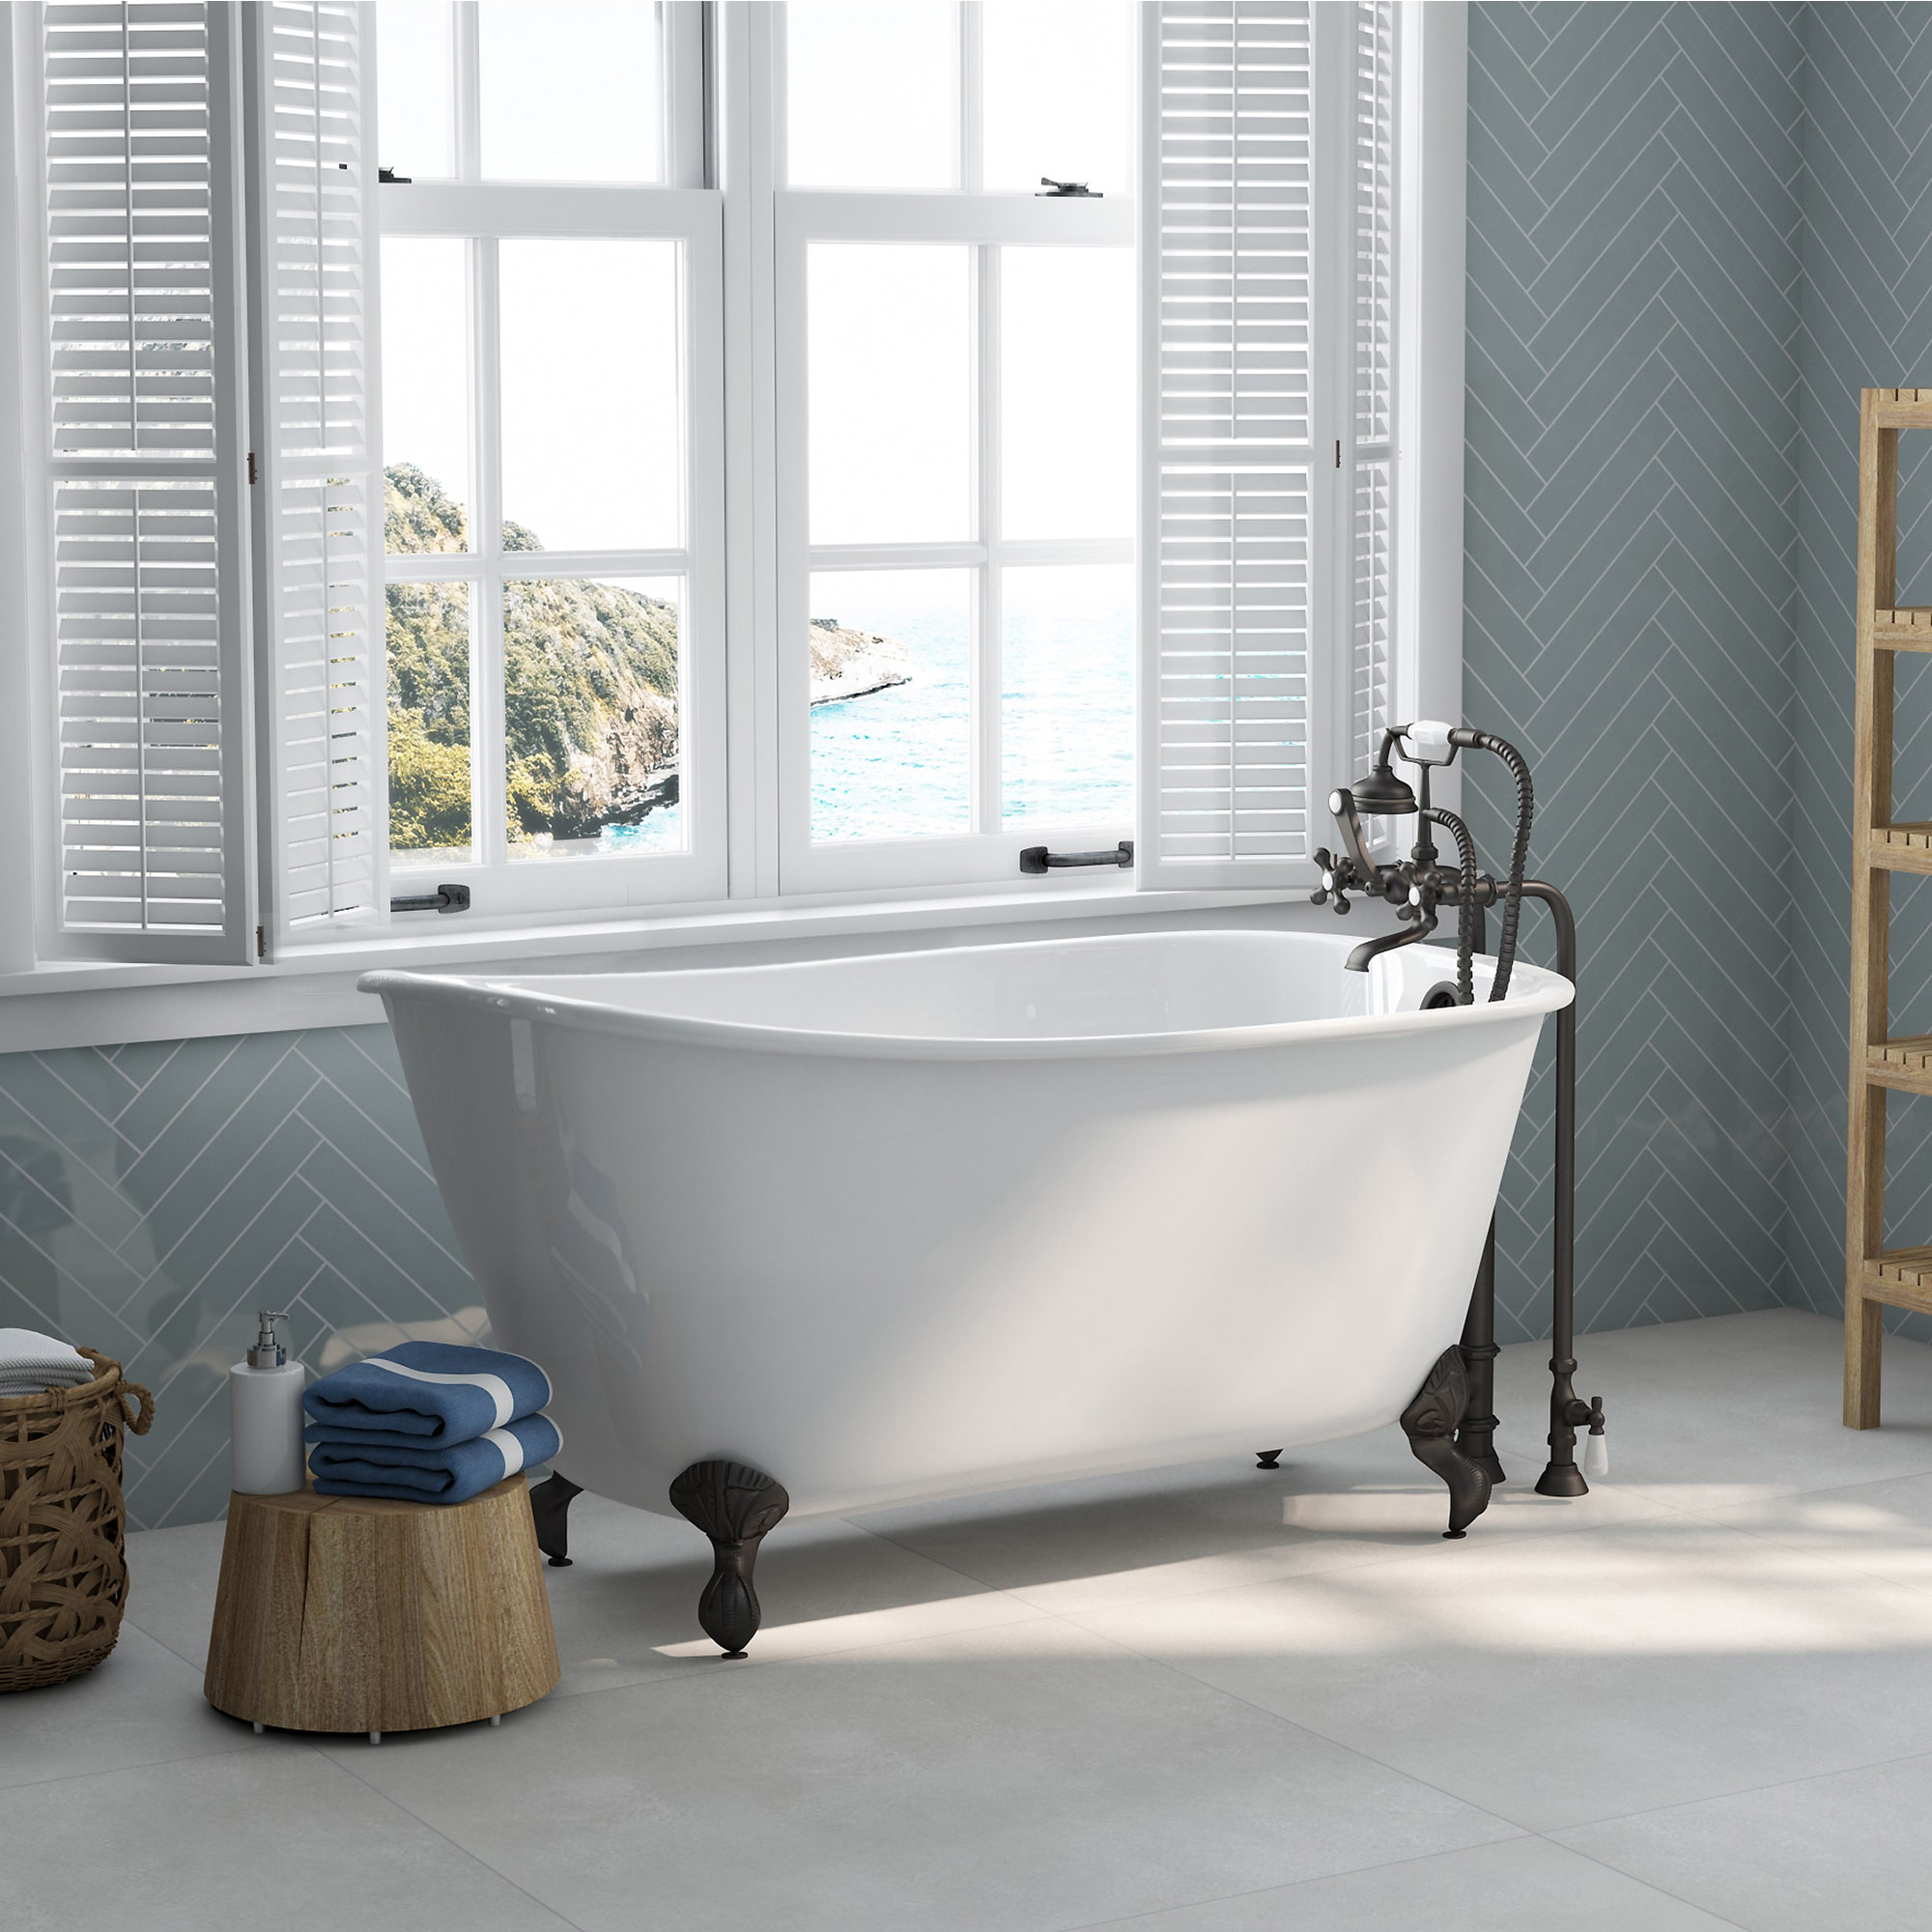 cast iron tub and faucet, swedish tub and faucet, clawfoot tub,